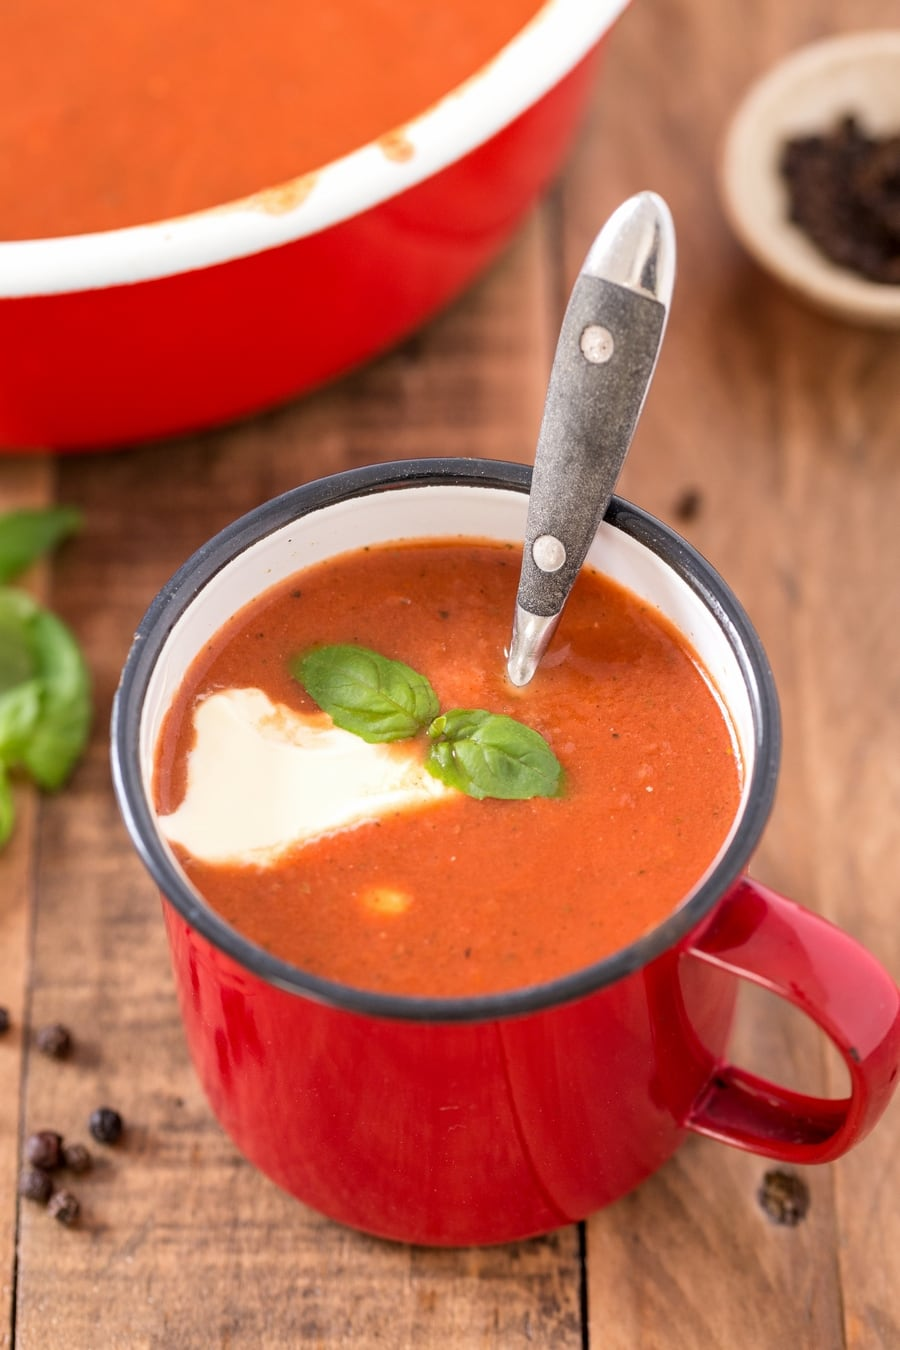 Red metal cup containing pomidorowa soup with a dollop of cream and basil leaves.